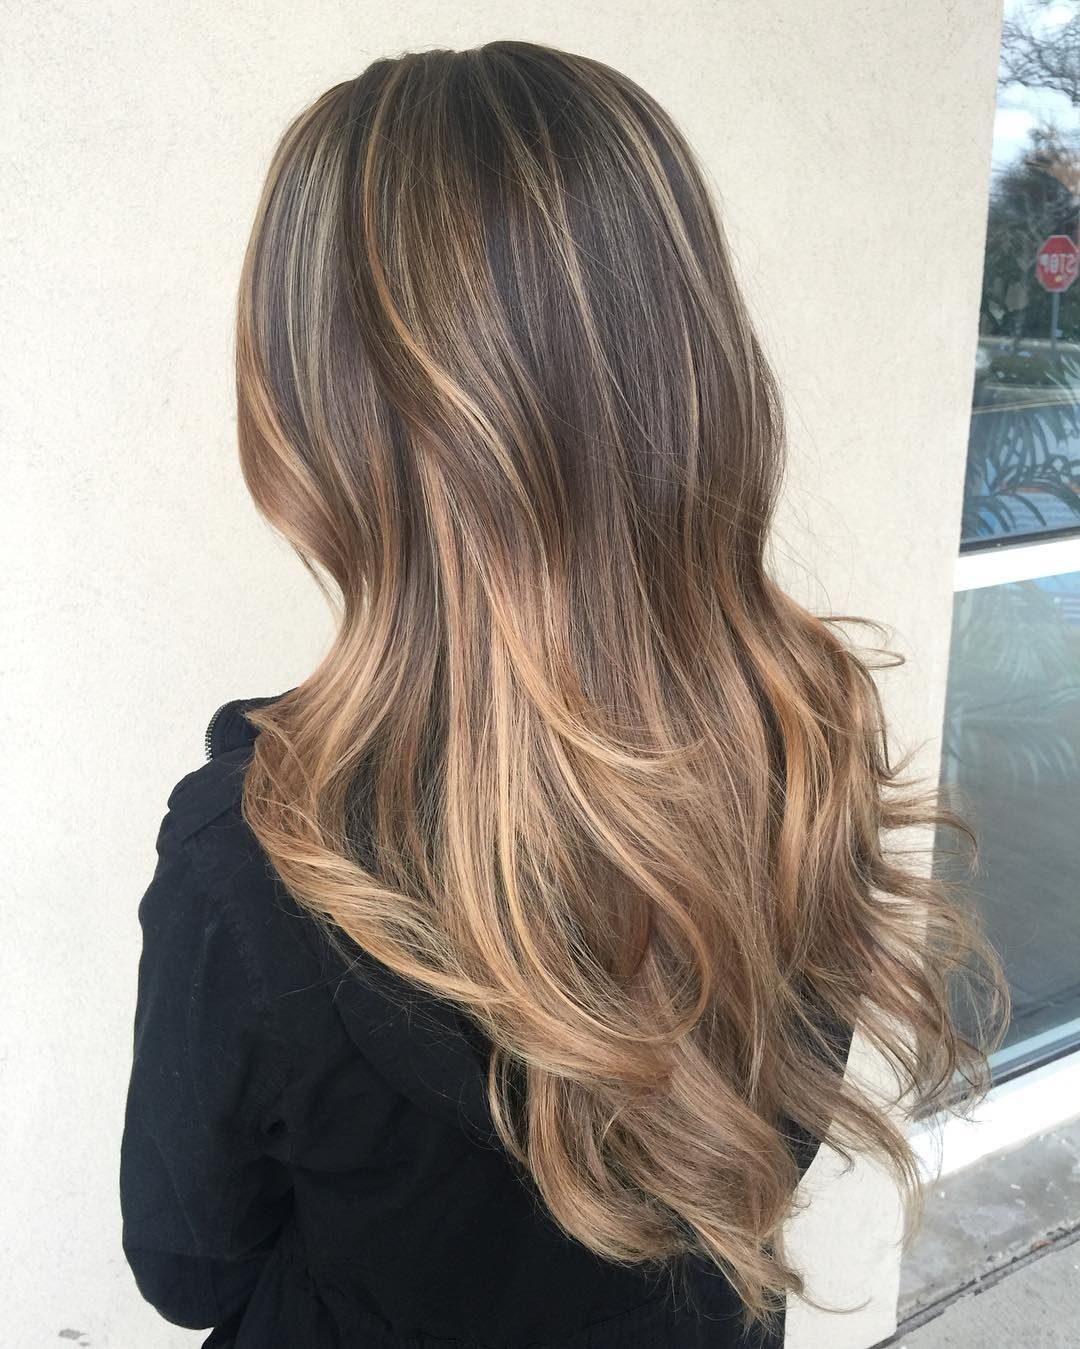 Going For The Golddddd Love This Warm Blonde By Instagram User